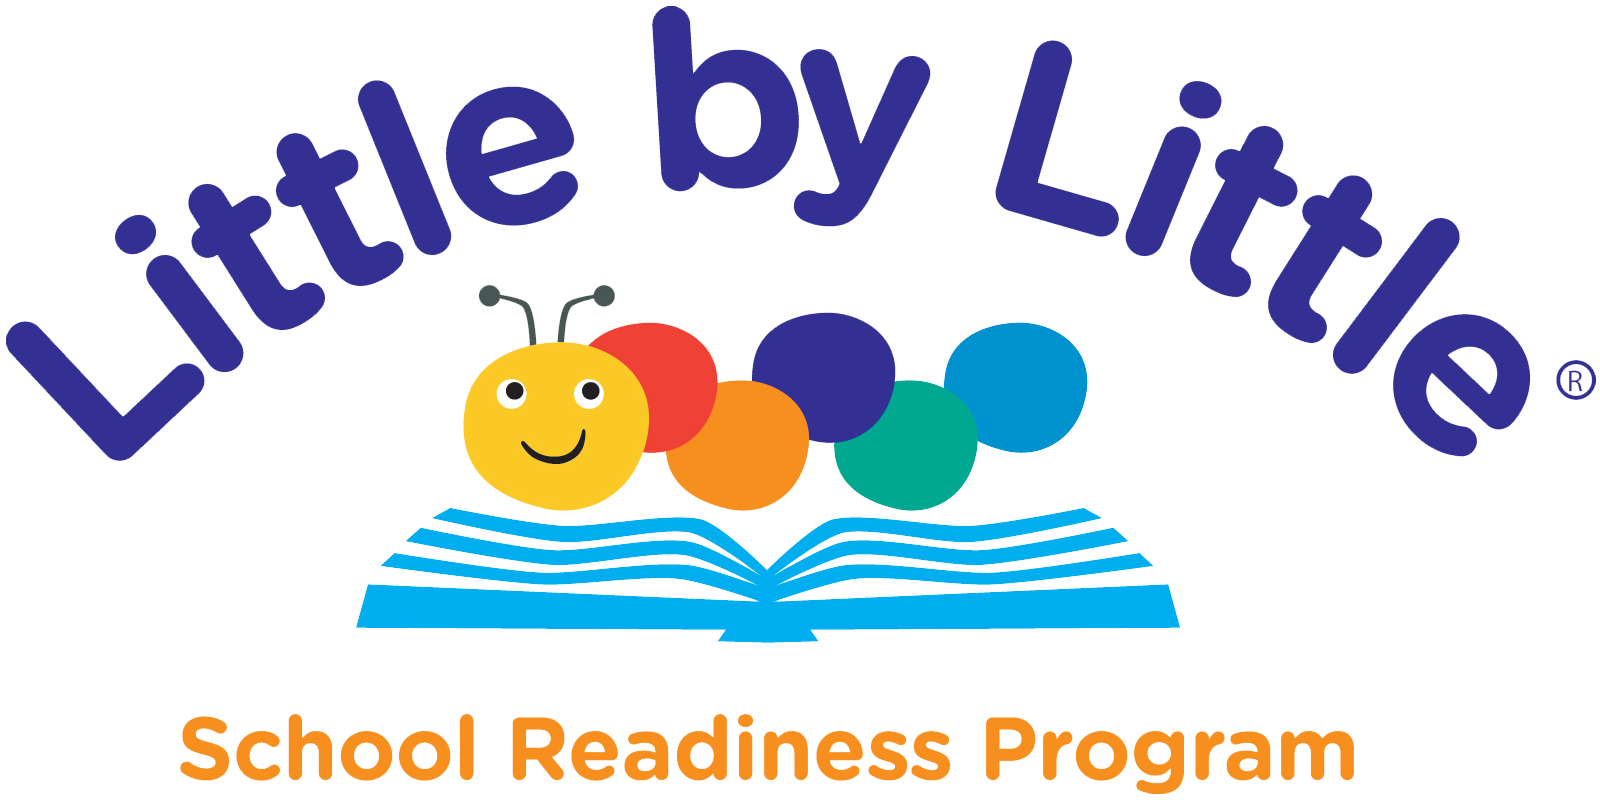 Little by Little School Readiness Program